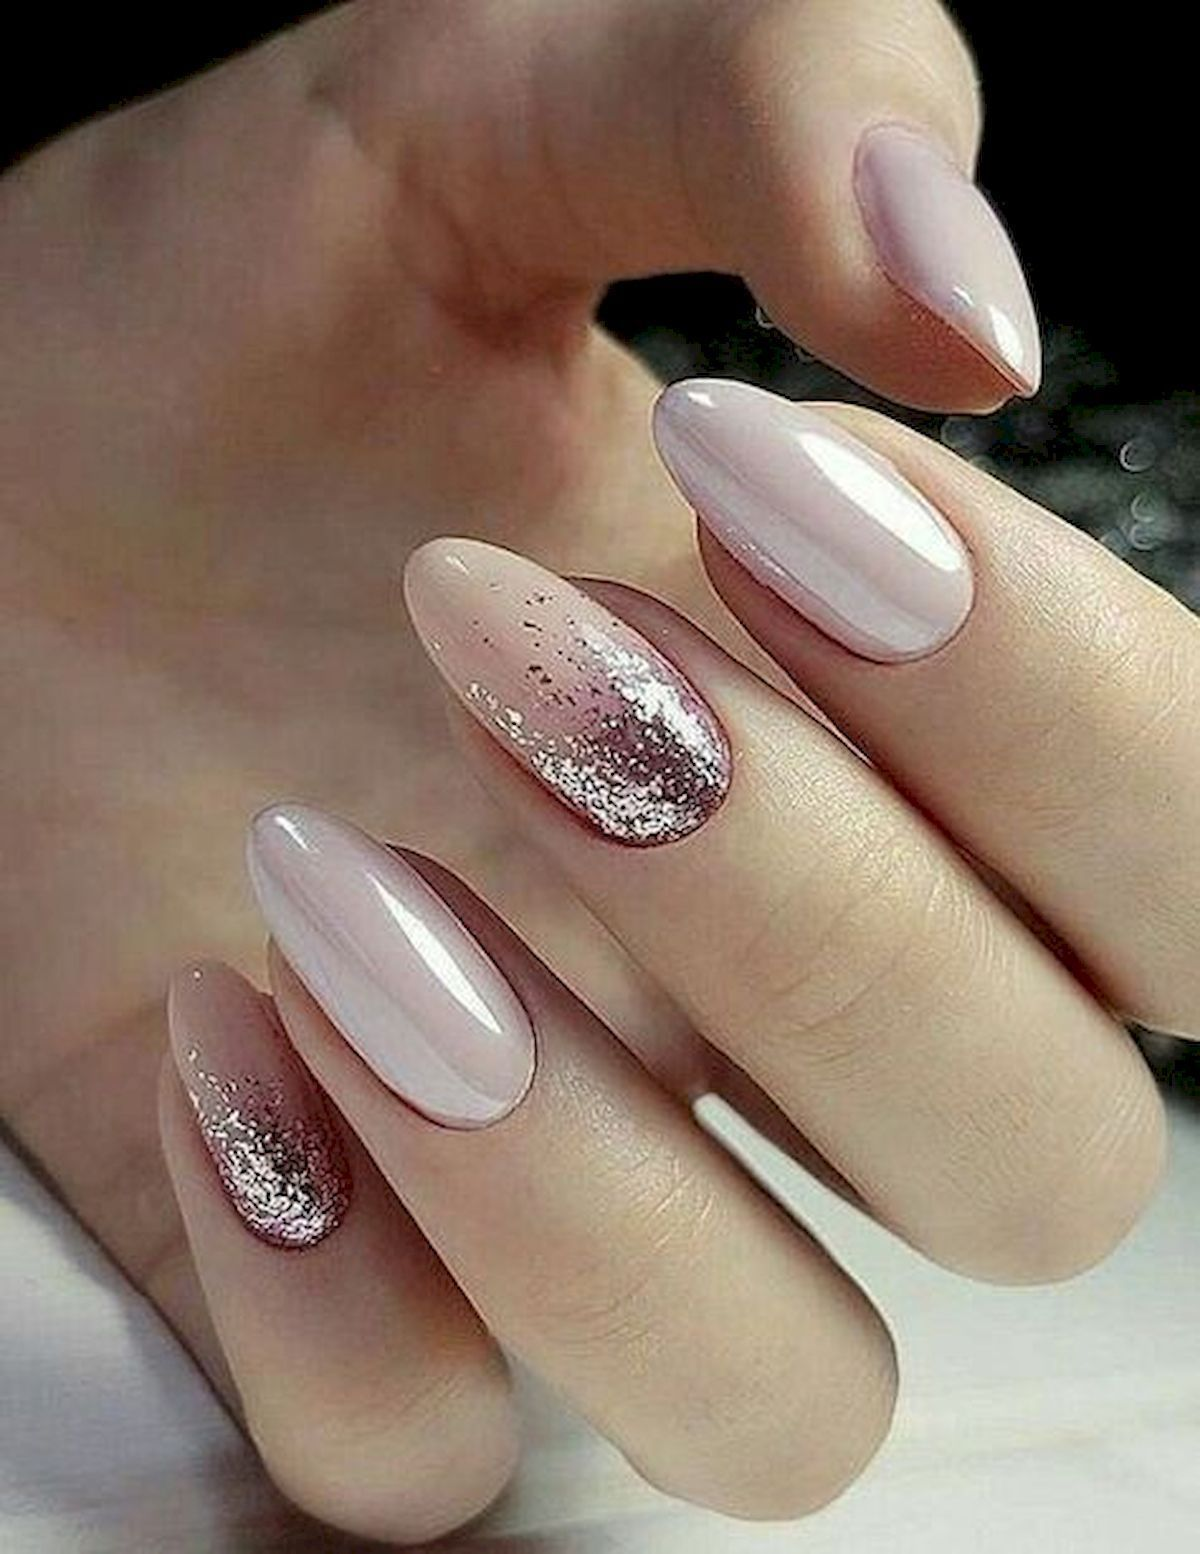 90 Best Spring Nails 2019 Ideas 49 Fashion And Lifestyle Nail Designs Glitter Classy Nail Designs Trendy Nails